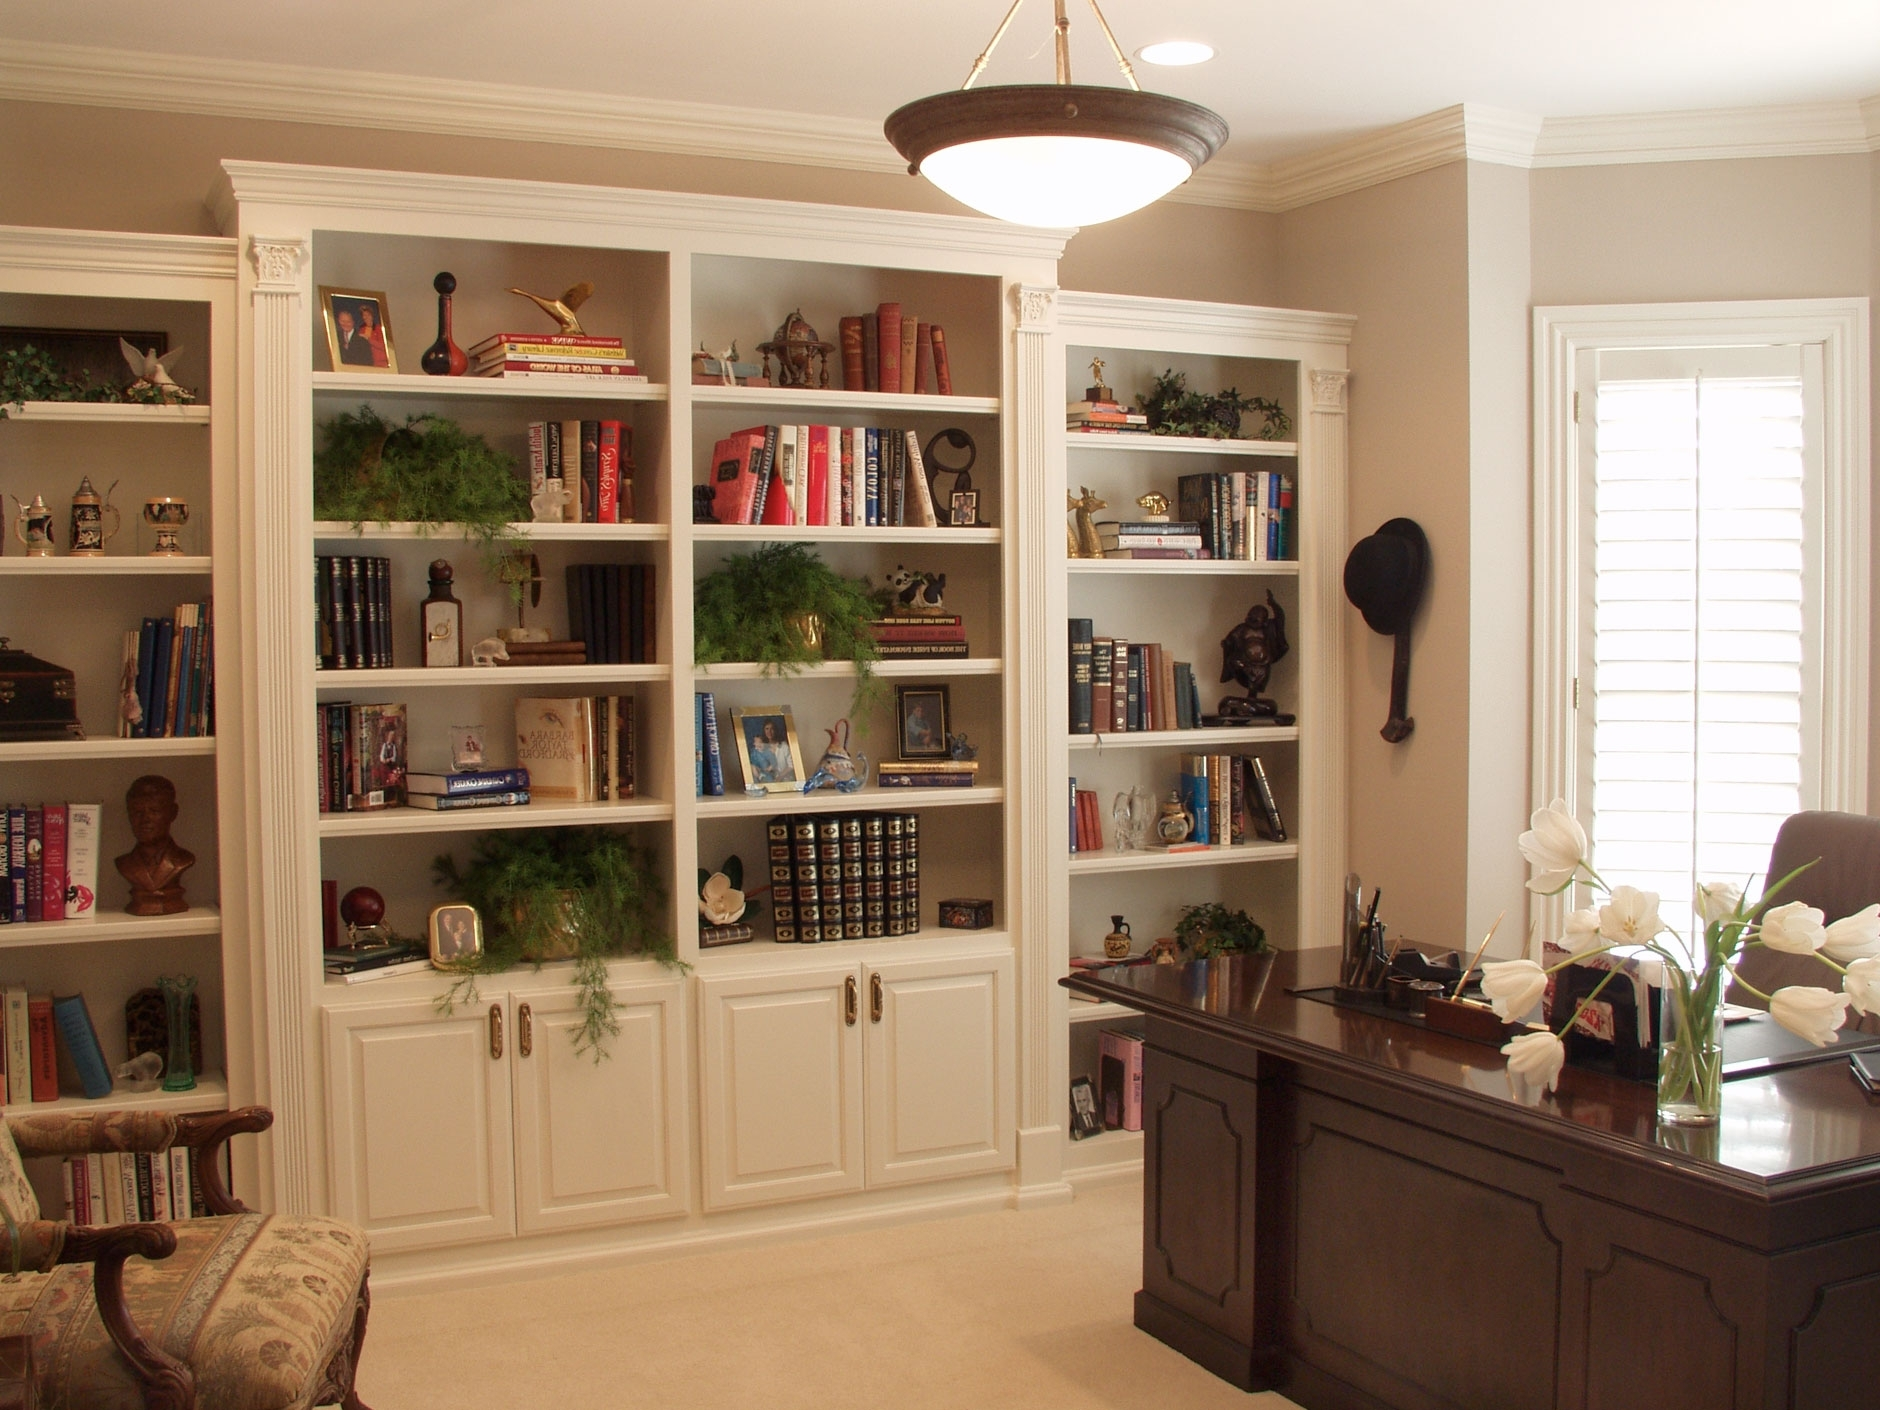 Preferred Bookcase White With Cabinet Top Base Doorswhite 13+ Perfect With Cabinet Bookcases (View 12 of 15)